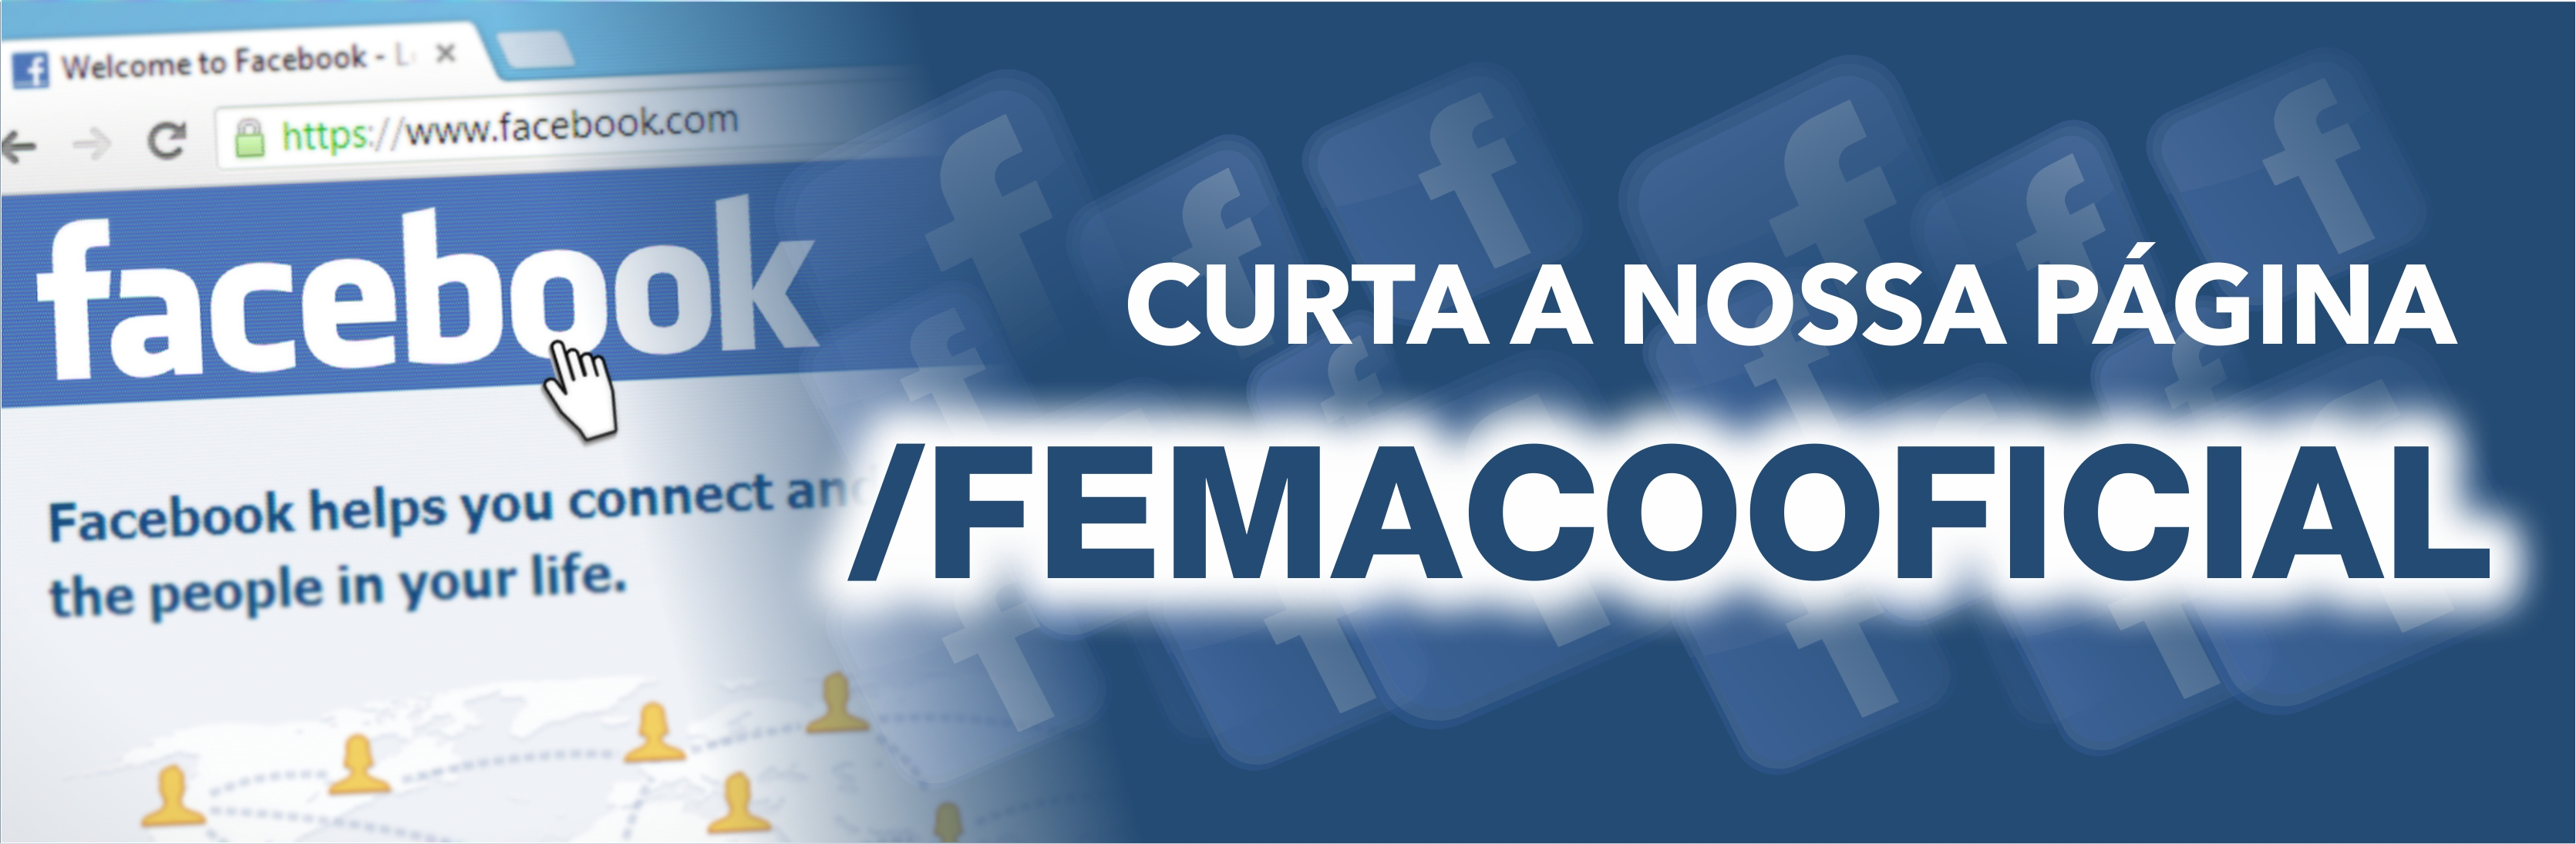 Banner Facebook Femaco